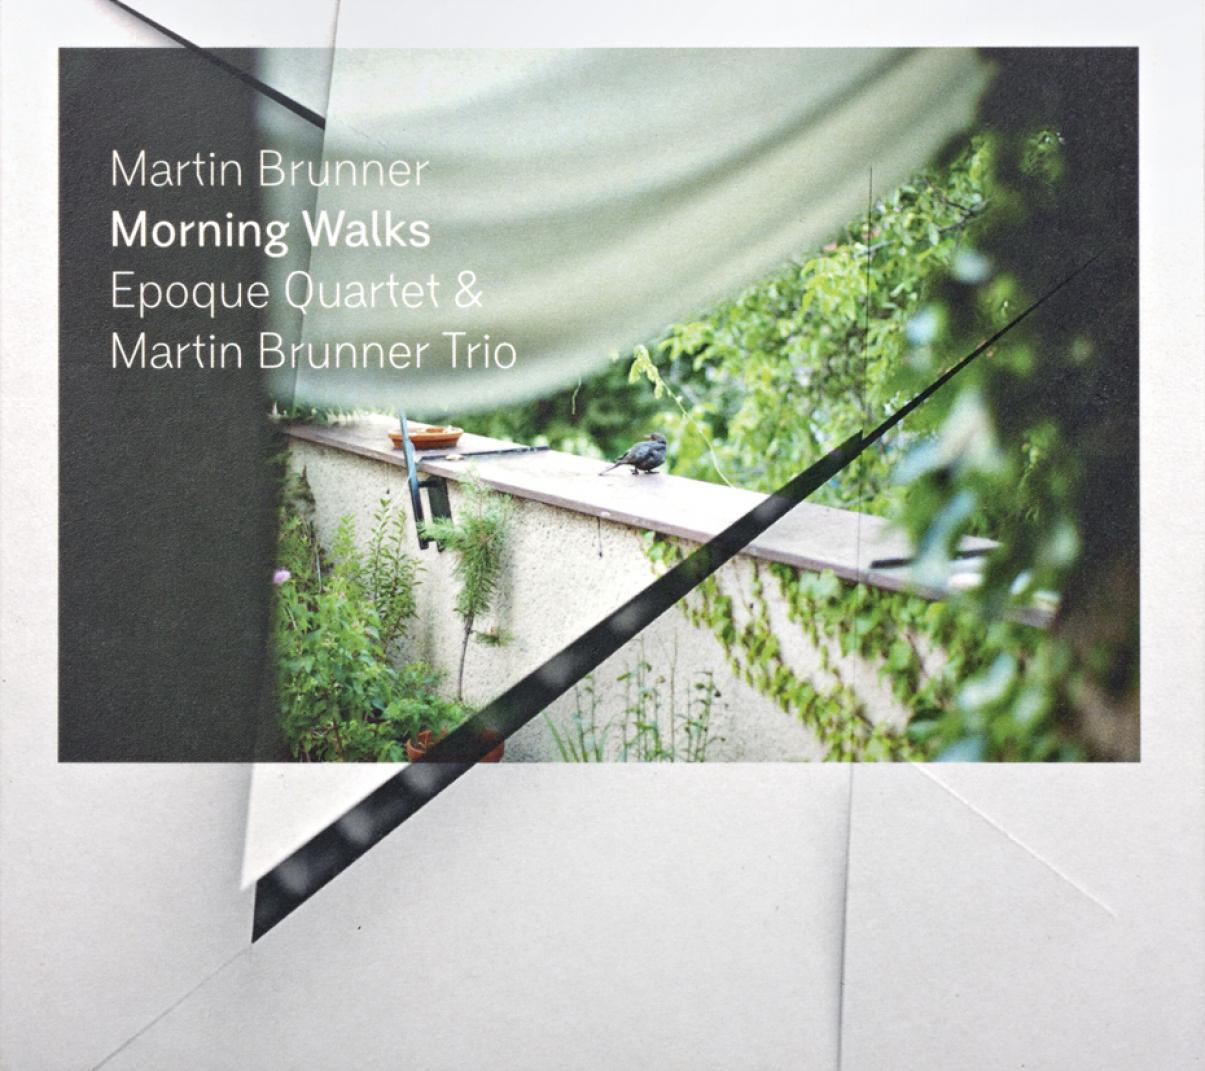 Martin Brunner: Morning Walks